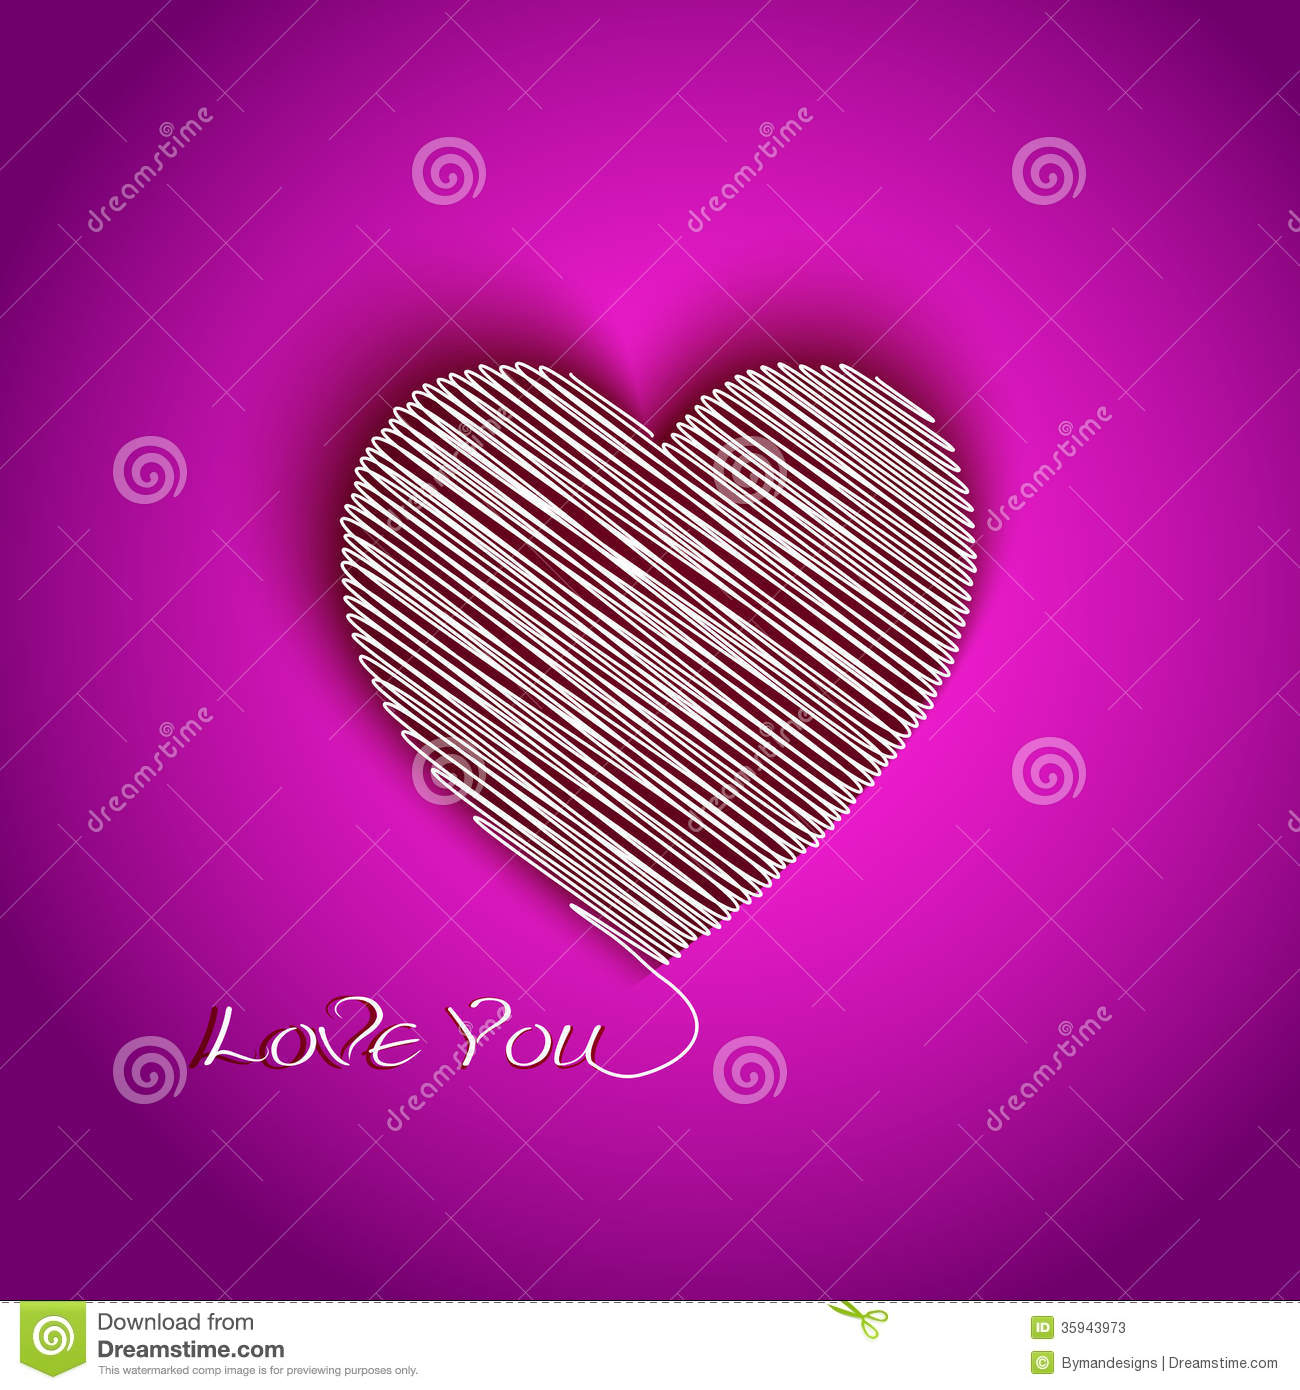 Heart shape with i love you message stock vector illustration of heart shape with i love you message m4hsunfo Gallery